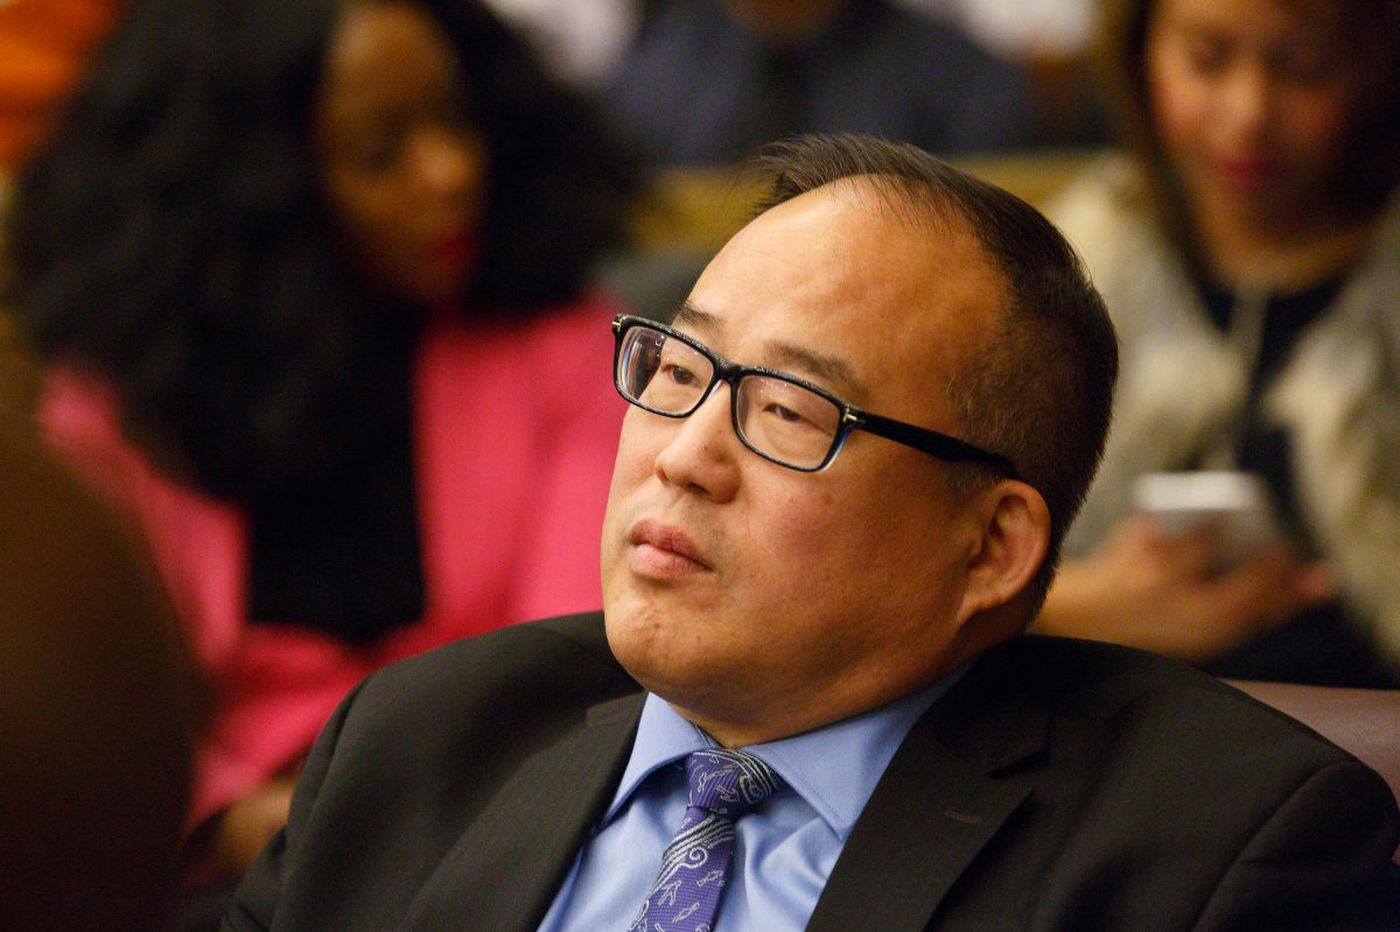 New bill protects law-abiding citizens victimized by squatters | Opinion